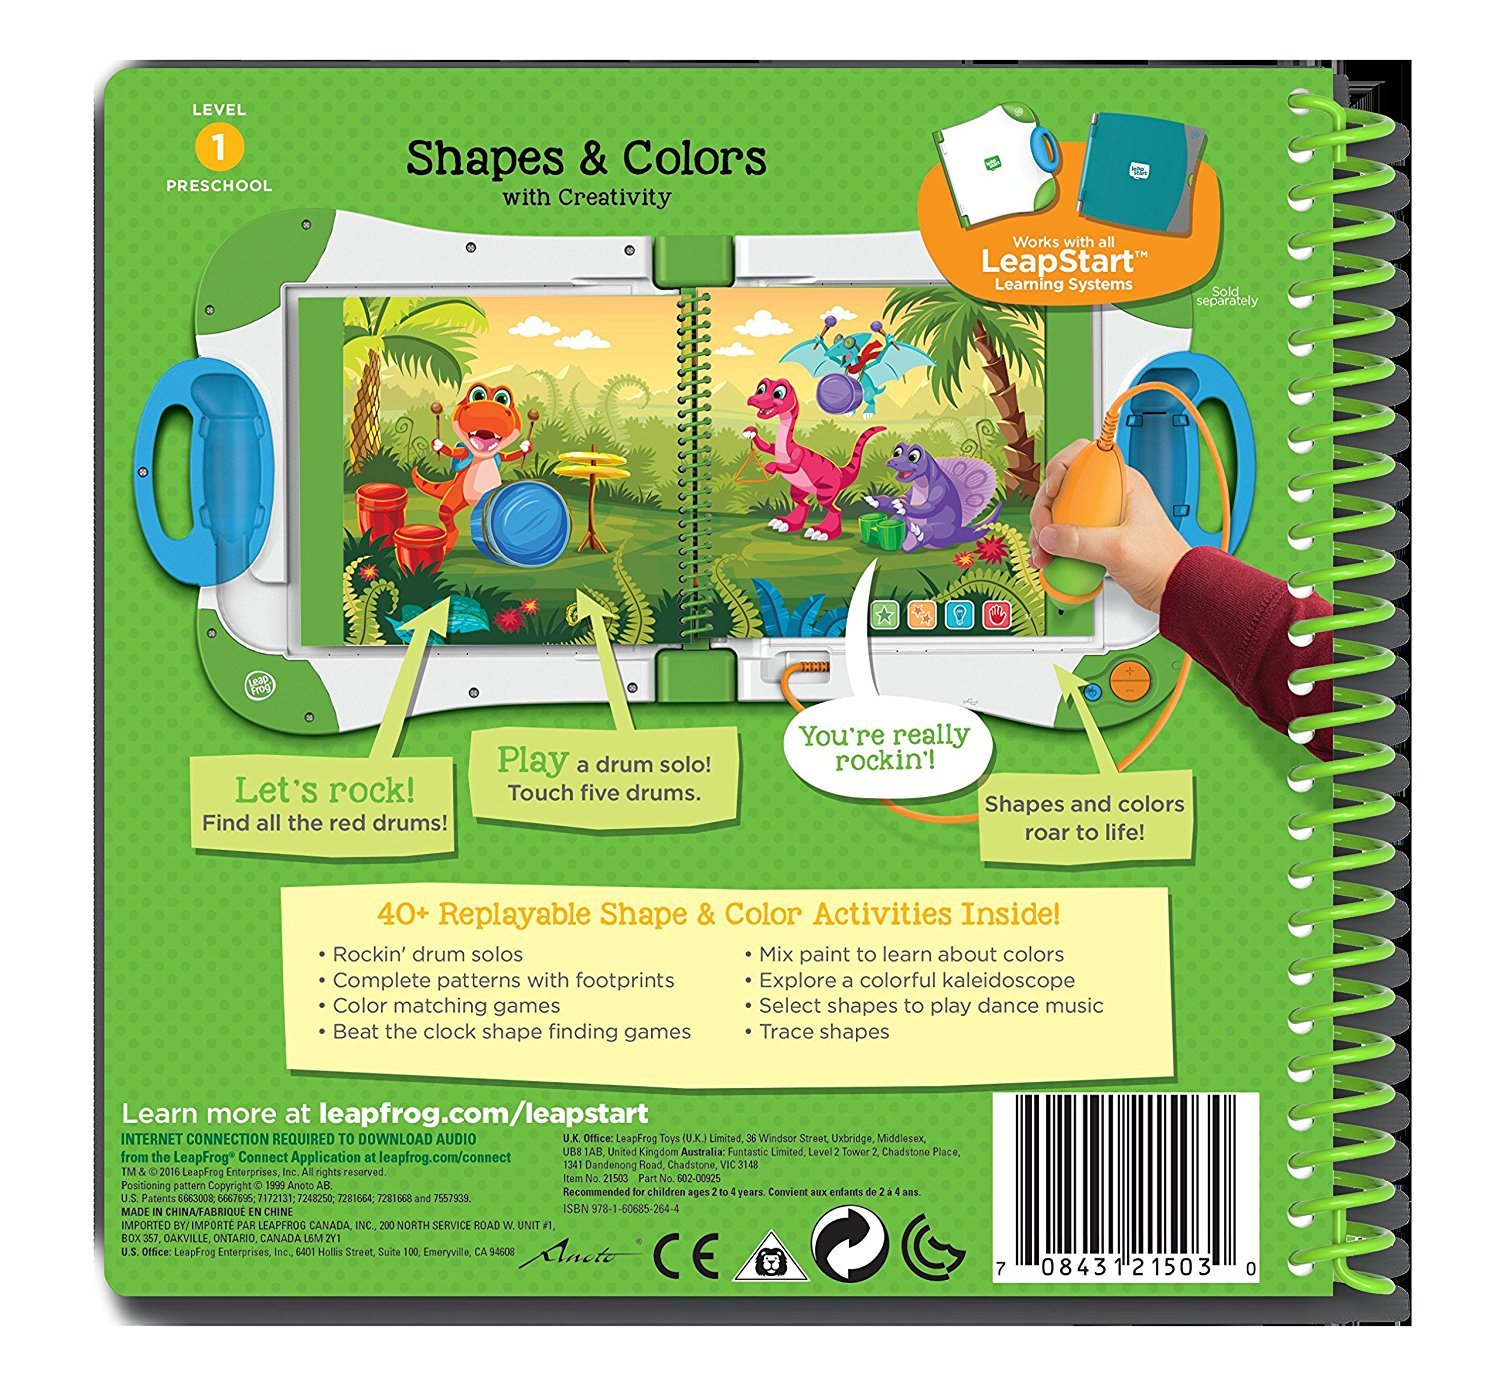 Amazon.com: LeapFrog LeapStart Preschool Activity Book: Shapes and ...